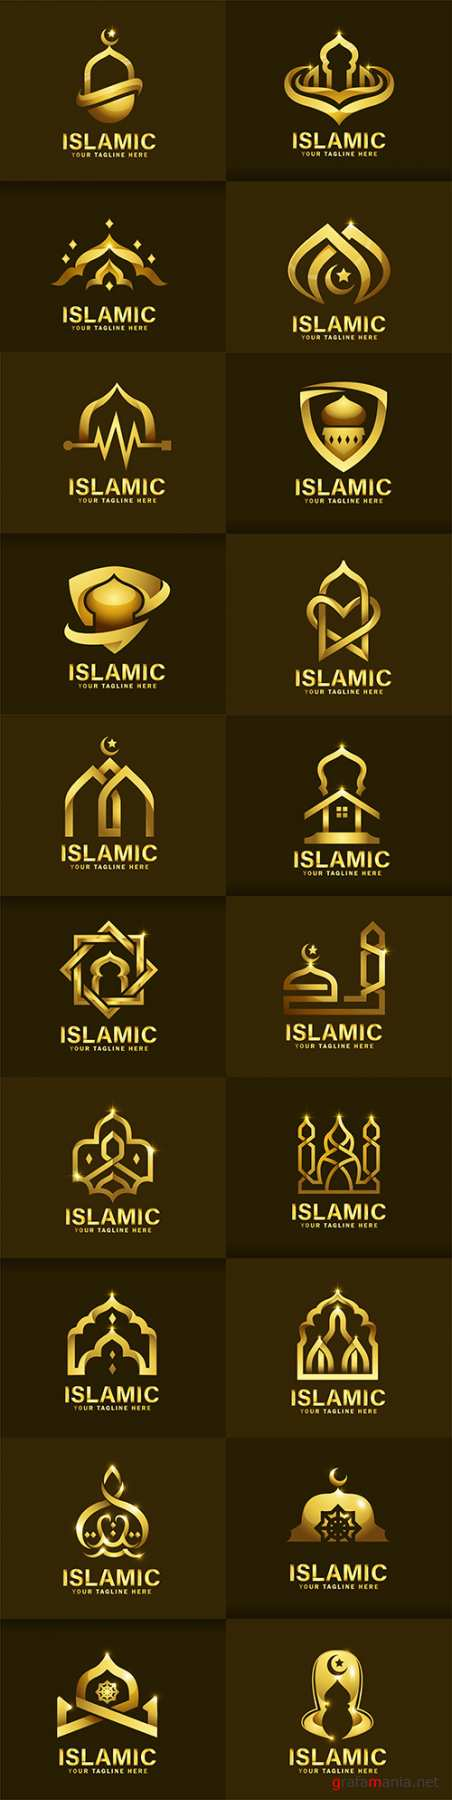 Luxurious Islamic logo template design golden mosque